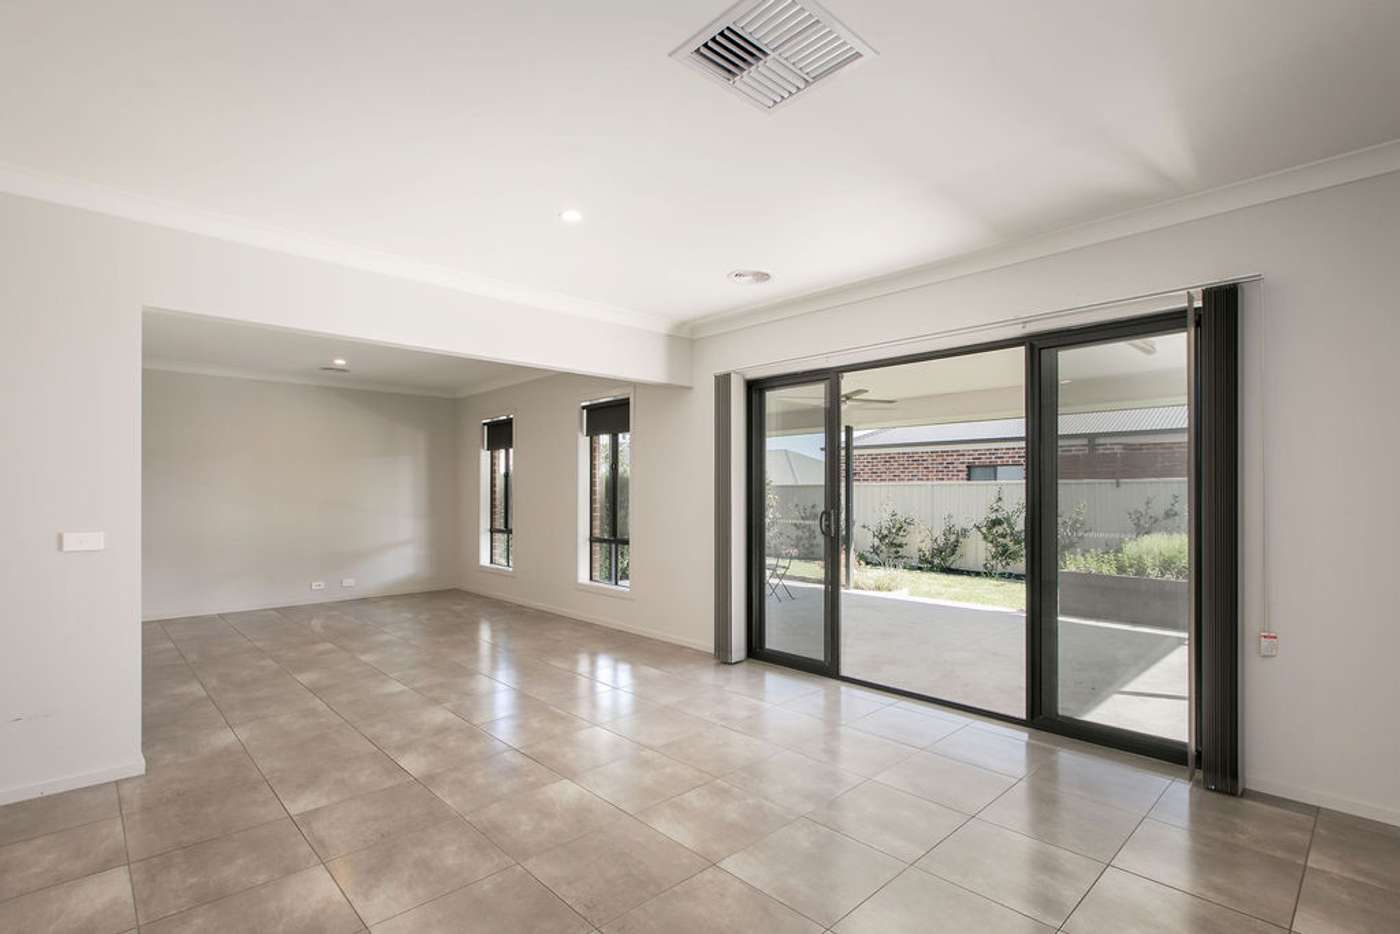 Fifth view of Homely house listing, 7 Derrick Street, Wodonga VIC 3690